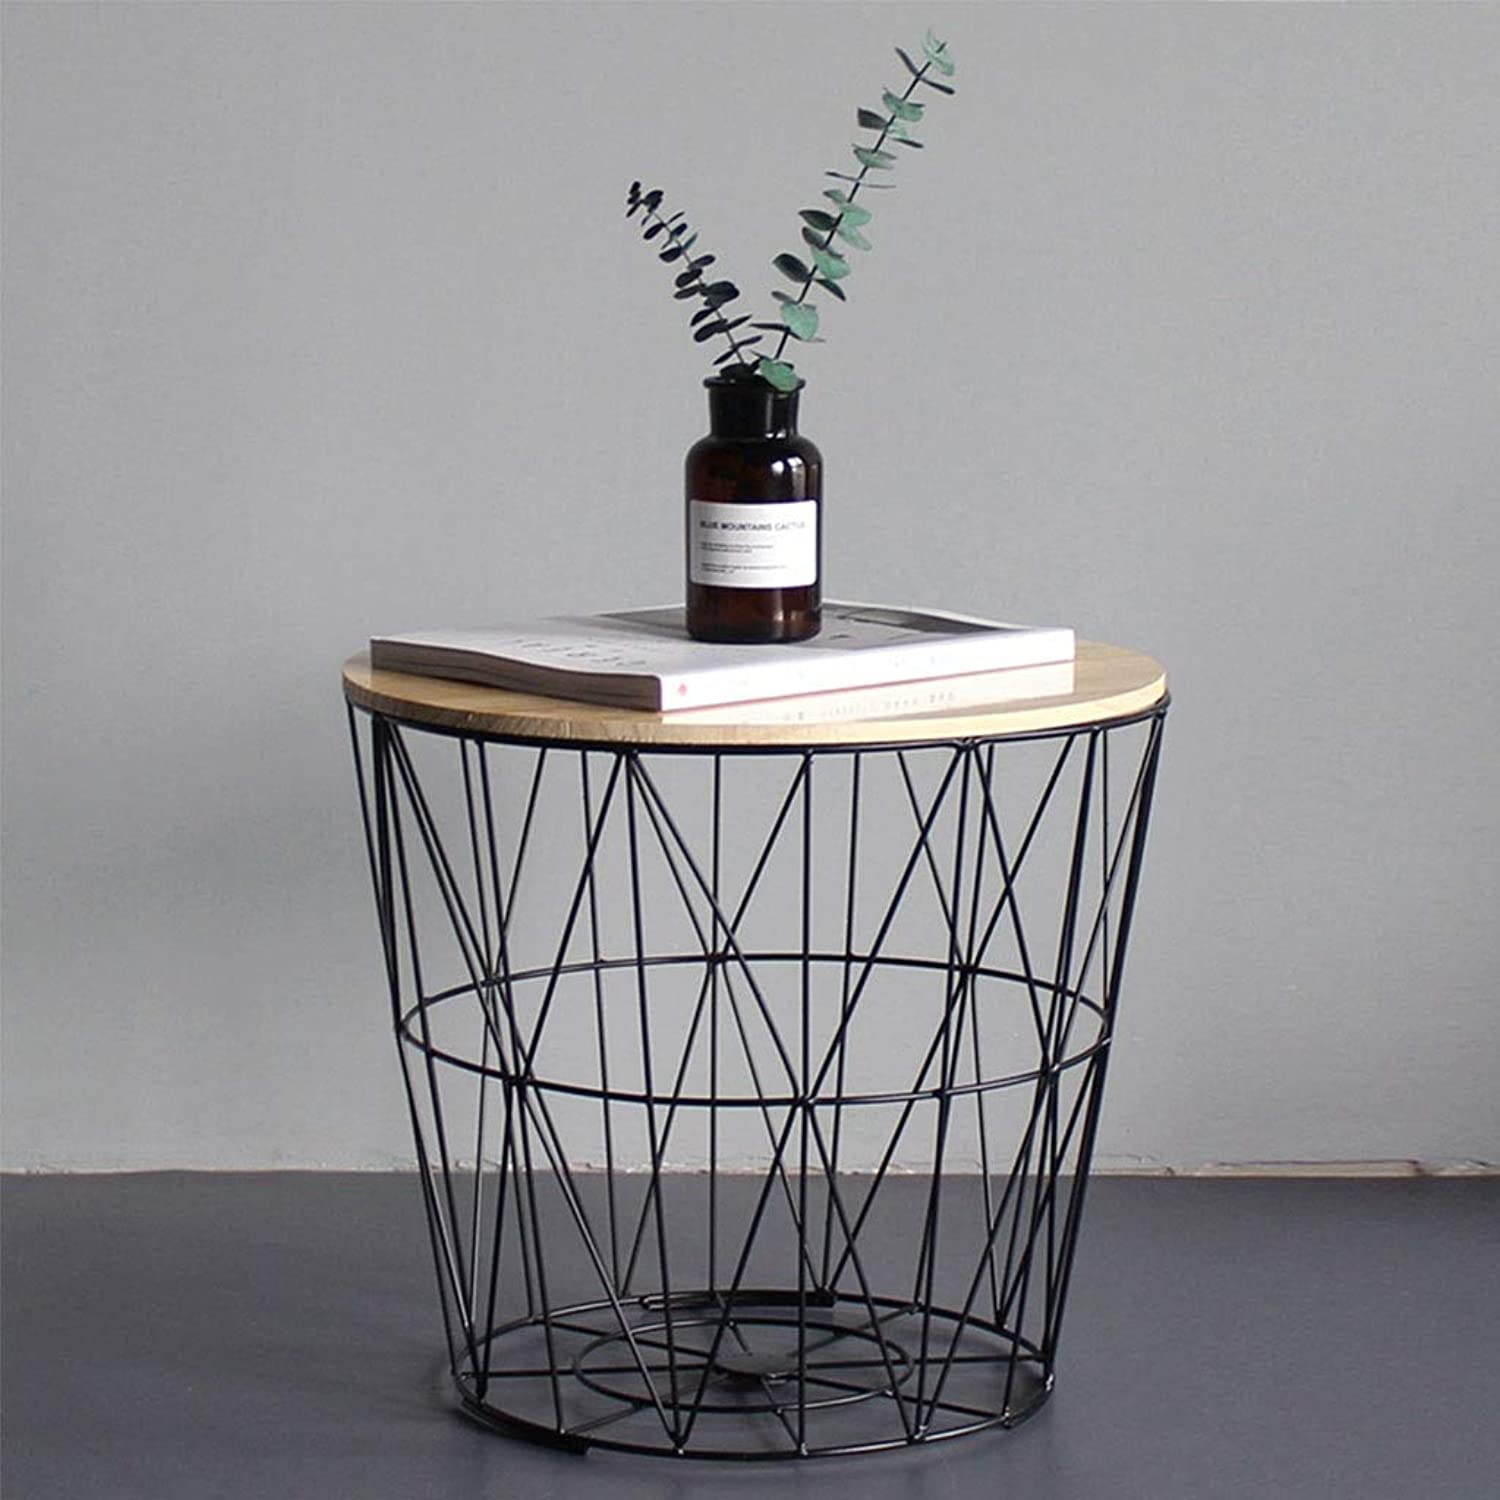 Iron Art Living Room Coffee Table with Storage, Industrial Sofa Corner Table, Solid Wood Small Round Table with Geometric Storage Basket (color   Black, Size   35CM)